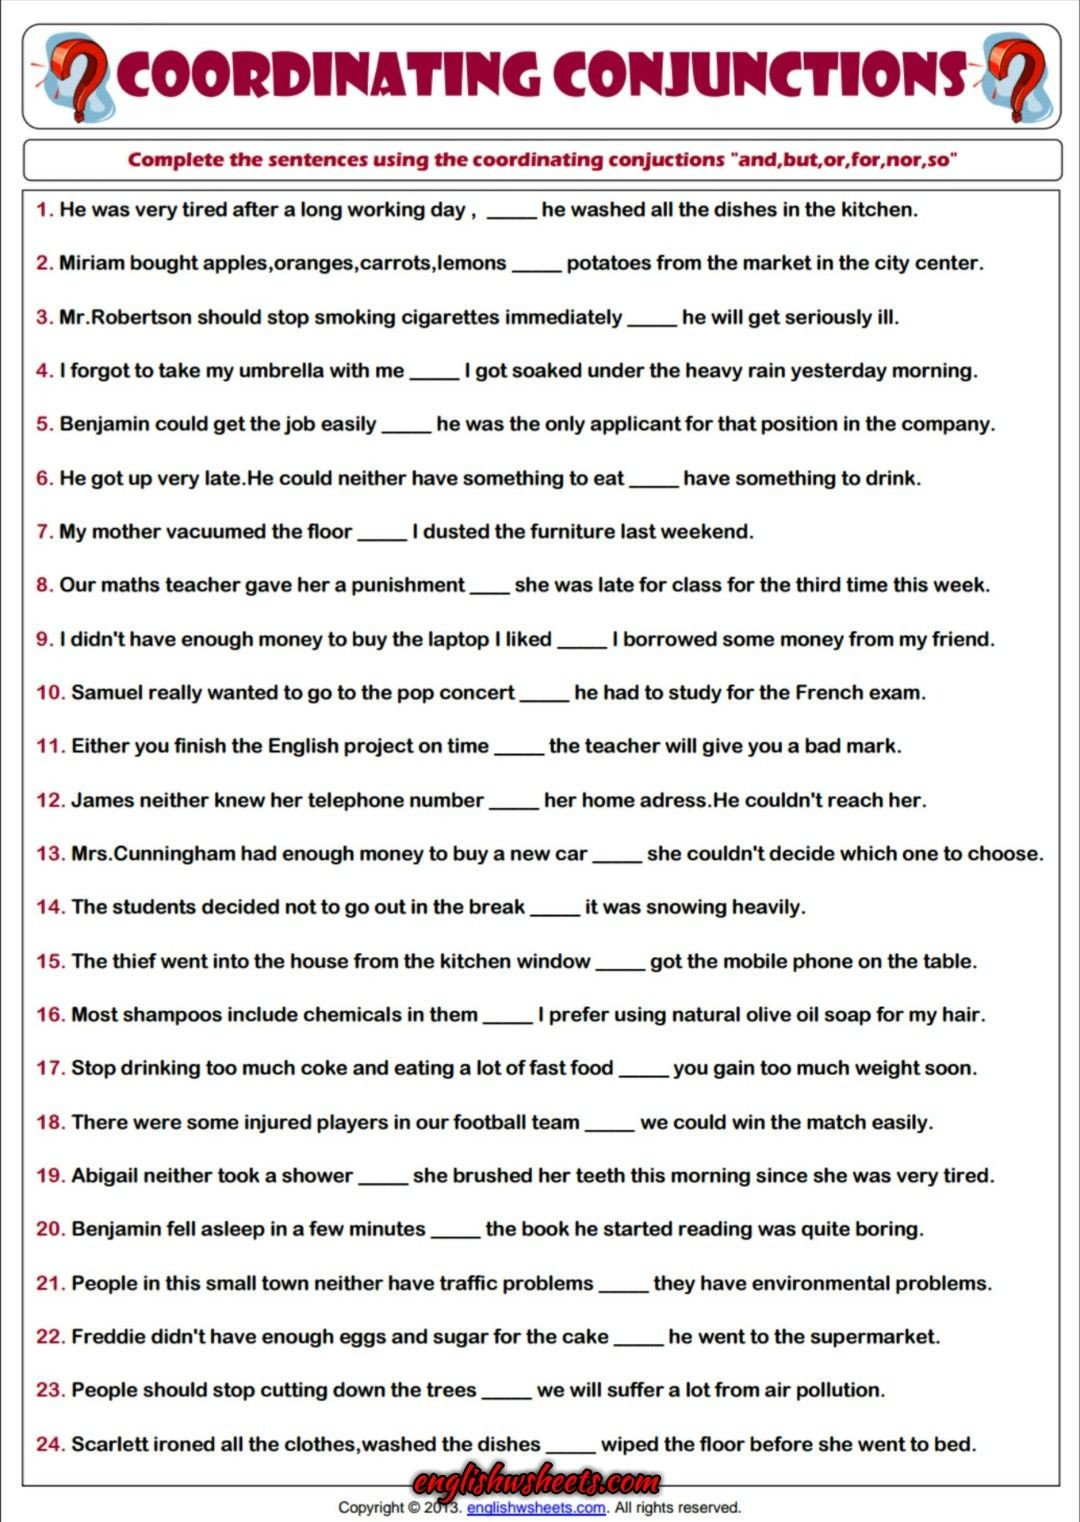 Conjunctions Worksheets for Grade 3 Coordinating Conjunctions Esl Printable Grammar Worksheet